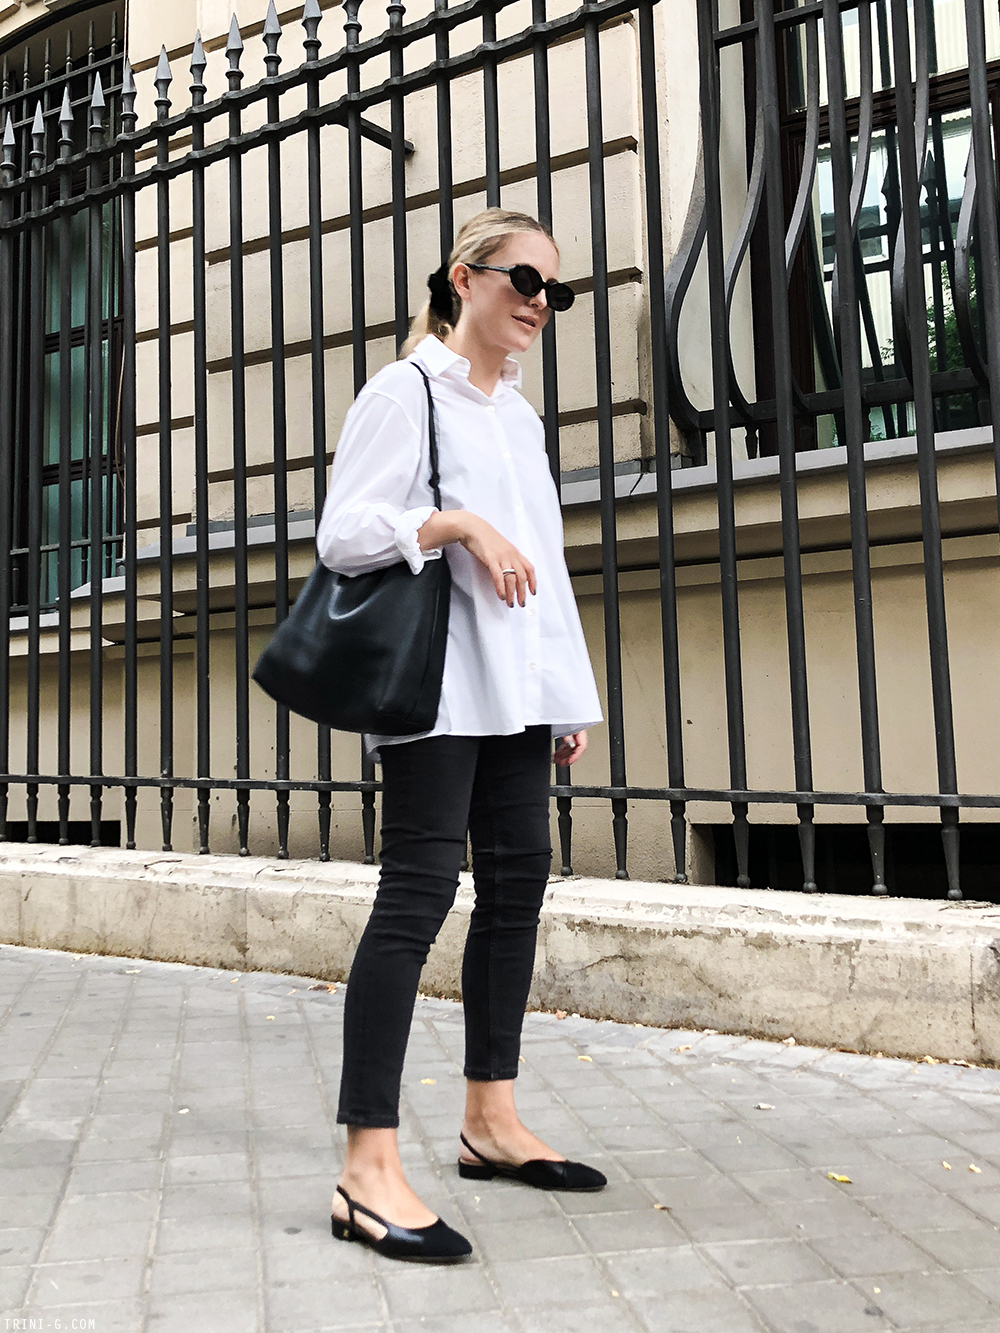 Trini | The Row shirt Balenciaga jeans Chanel flat slingbacks